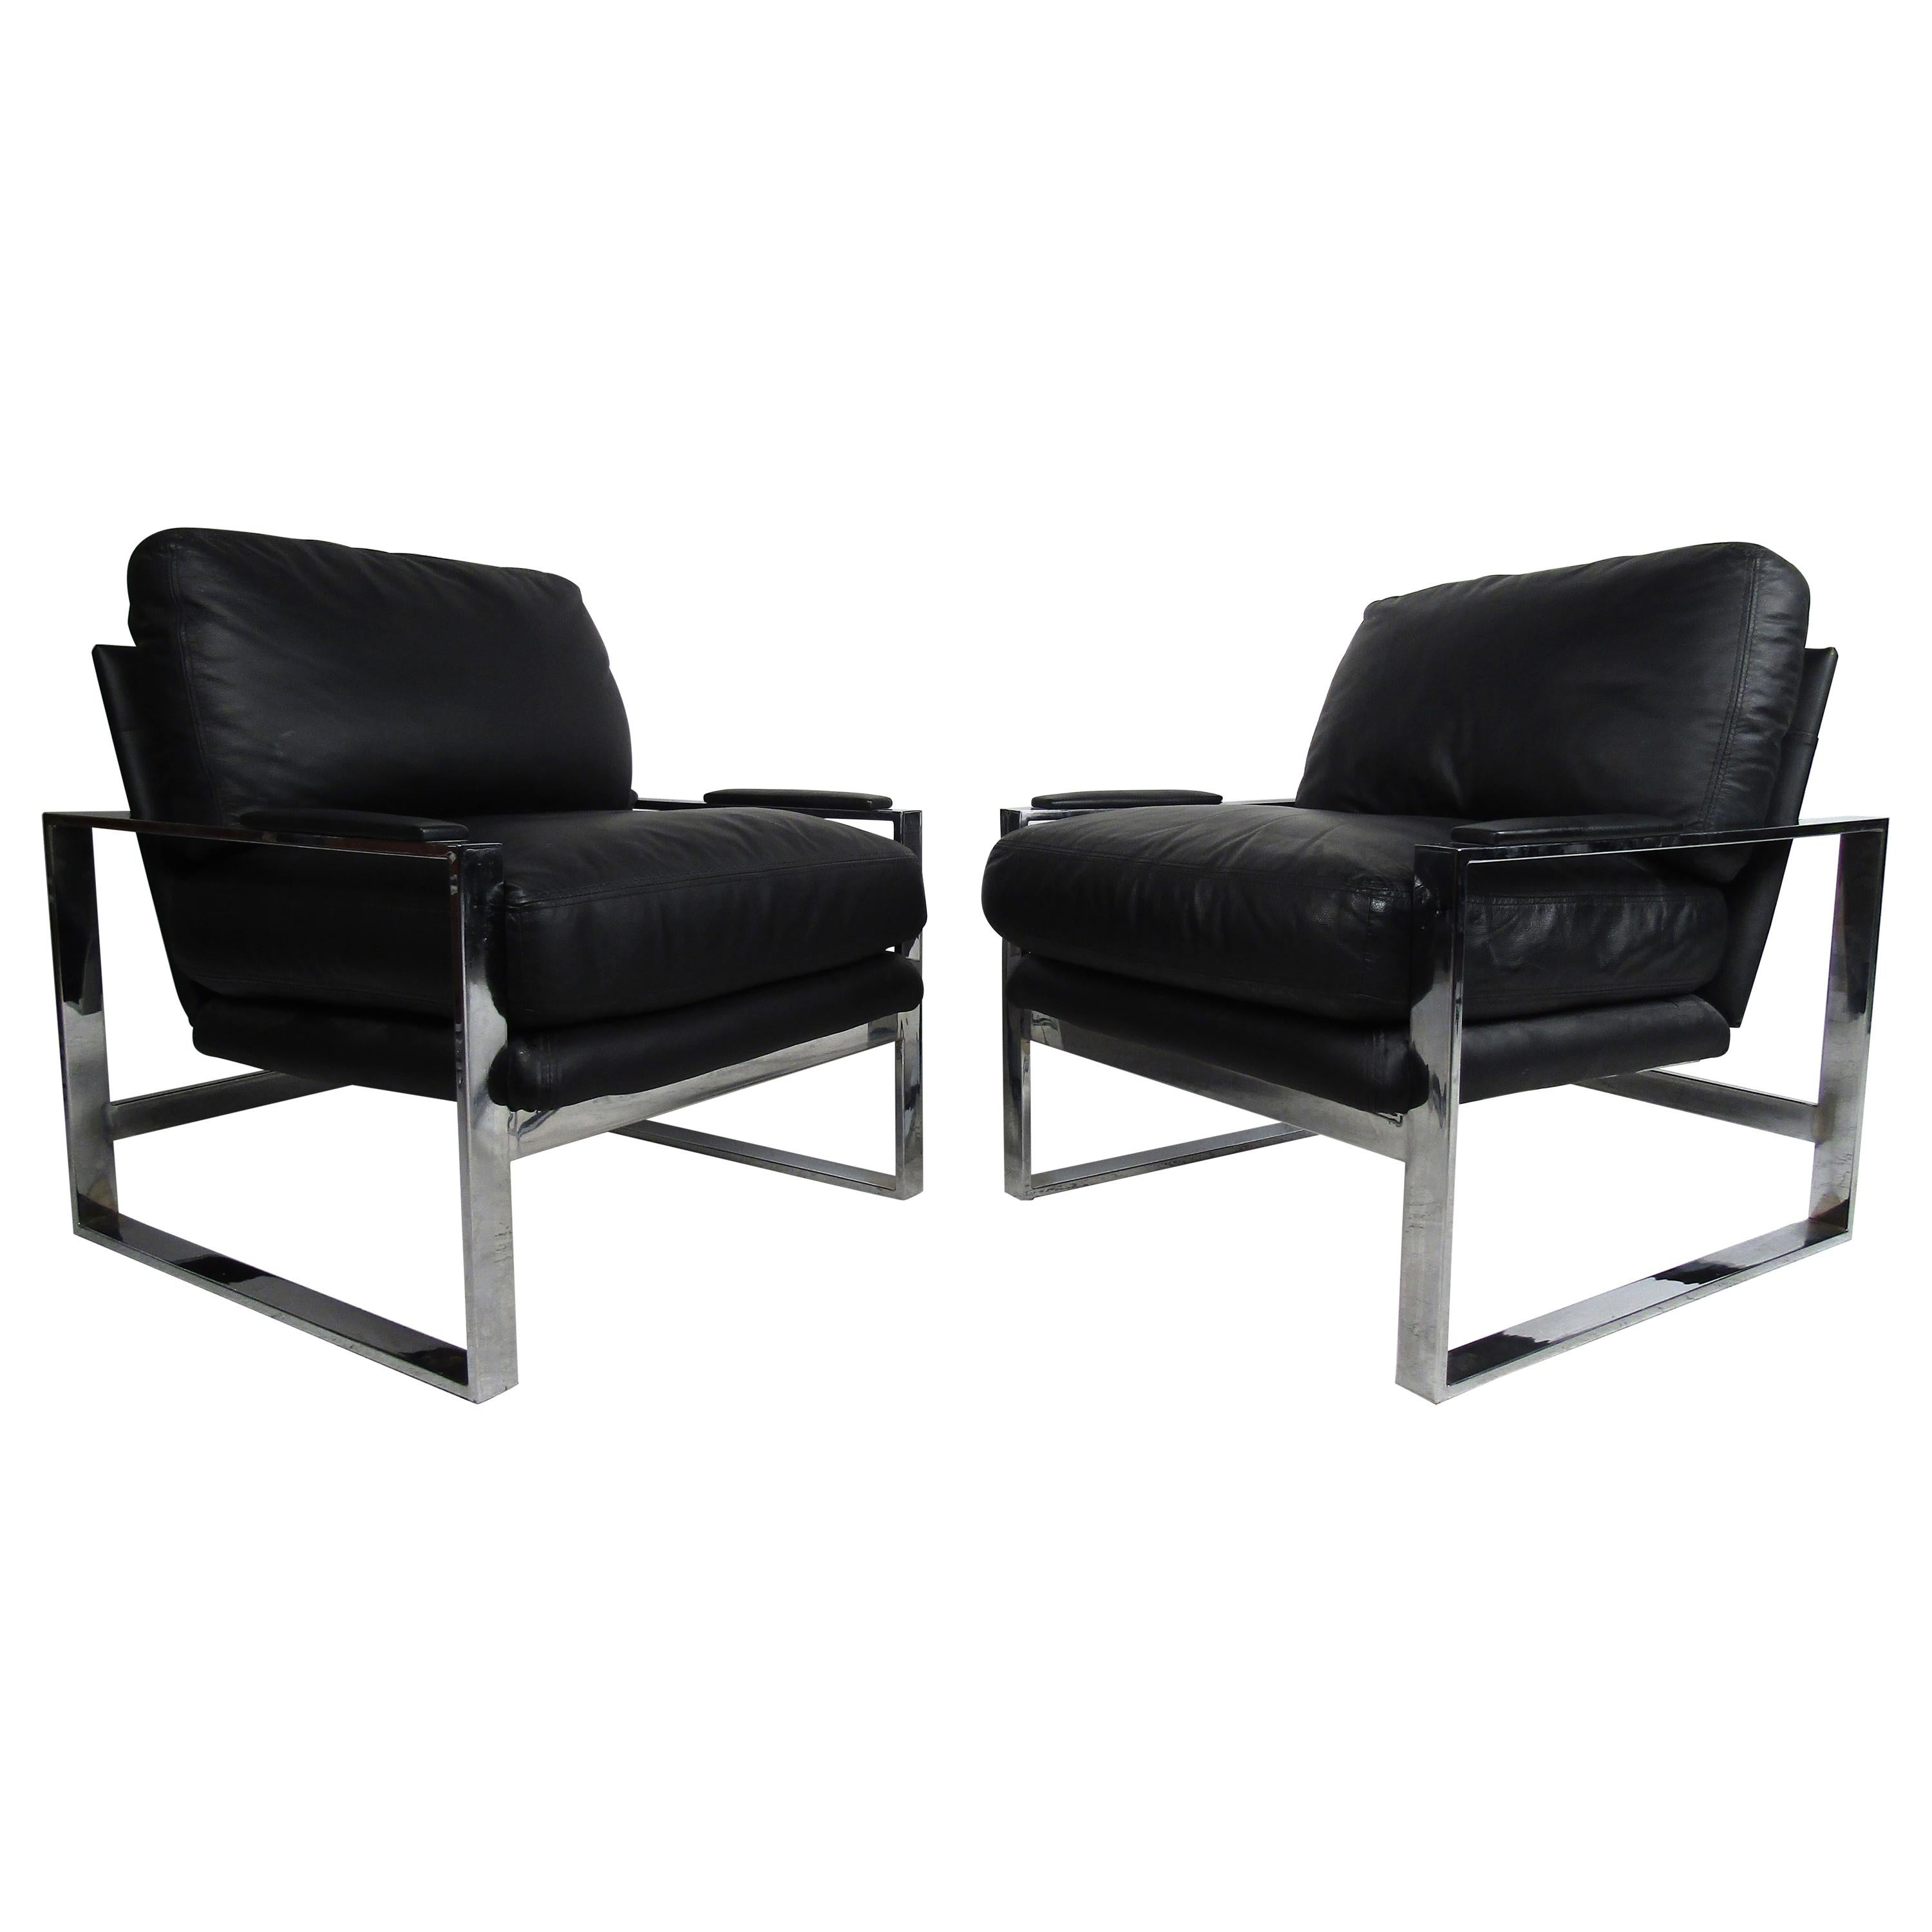 Pair of Black Leather Baughman Style Contemporary Lounge Chairs